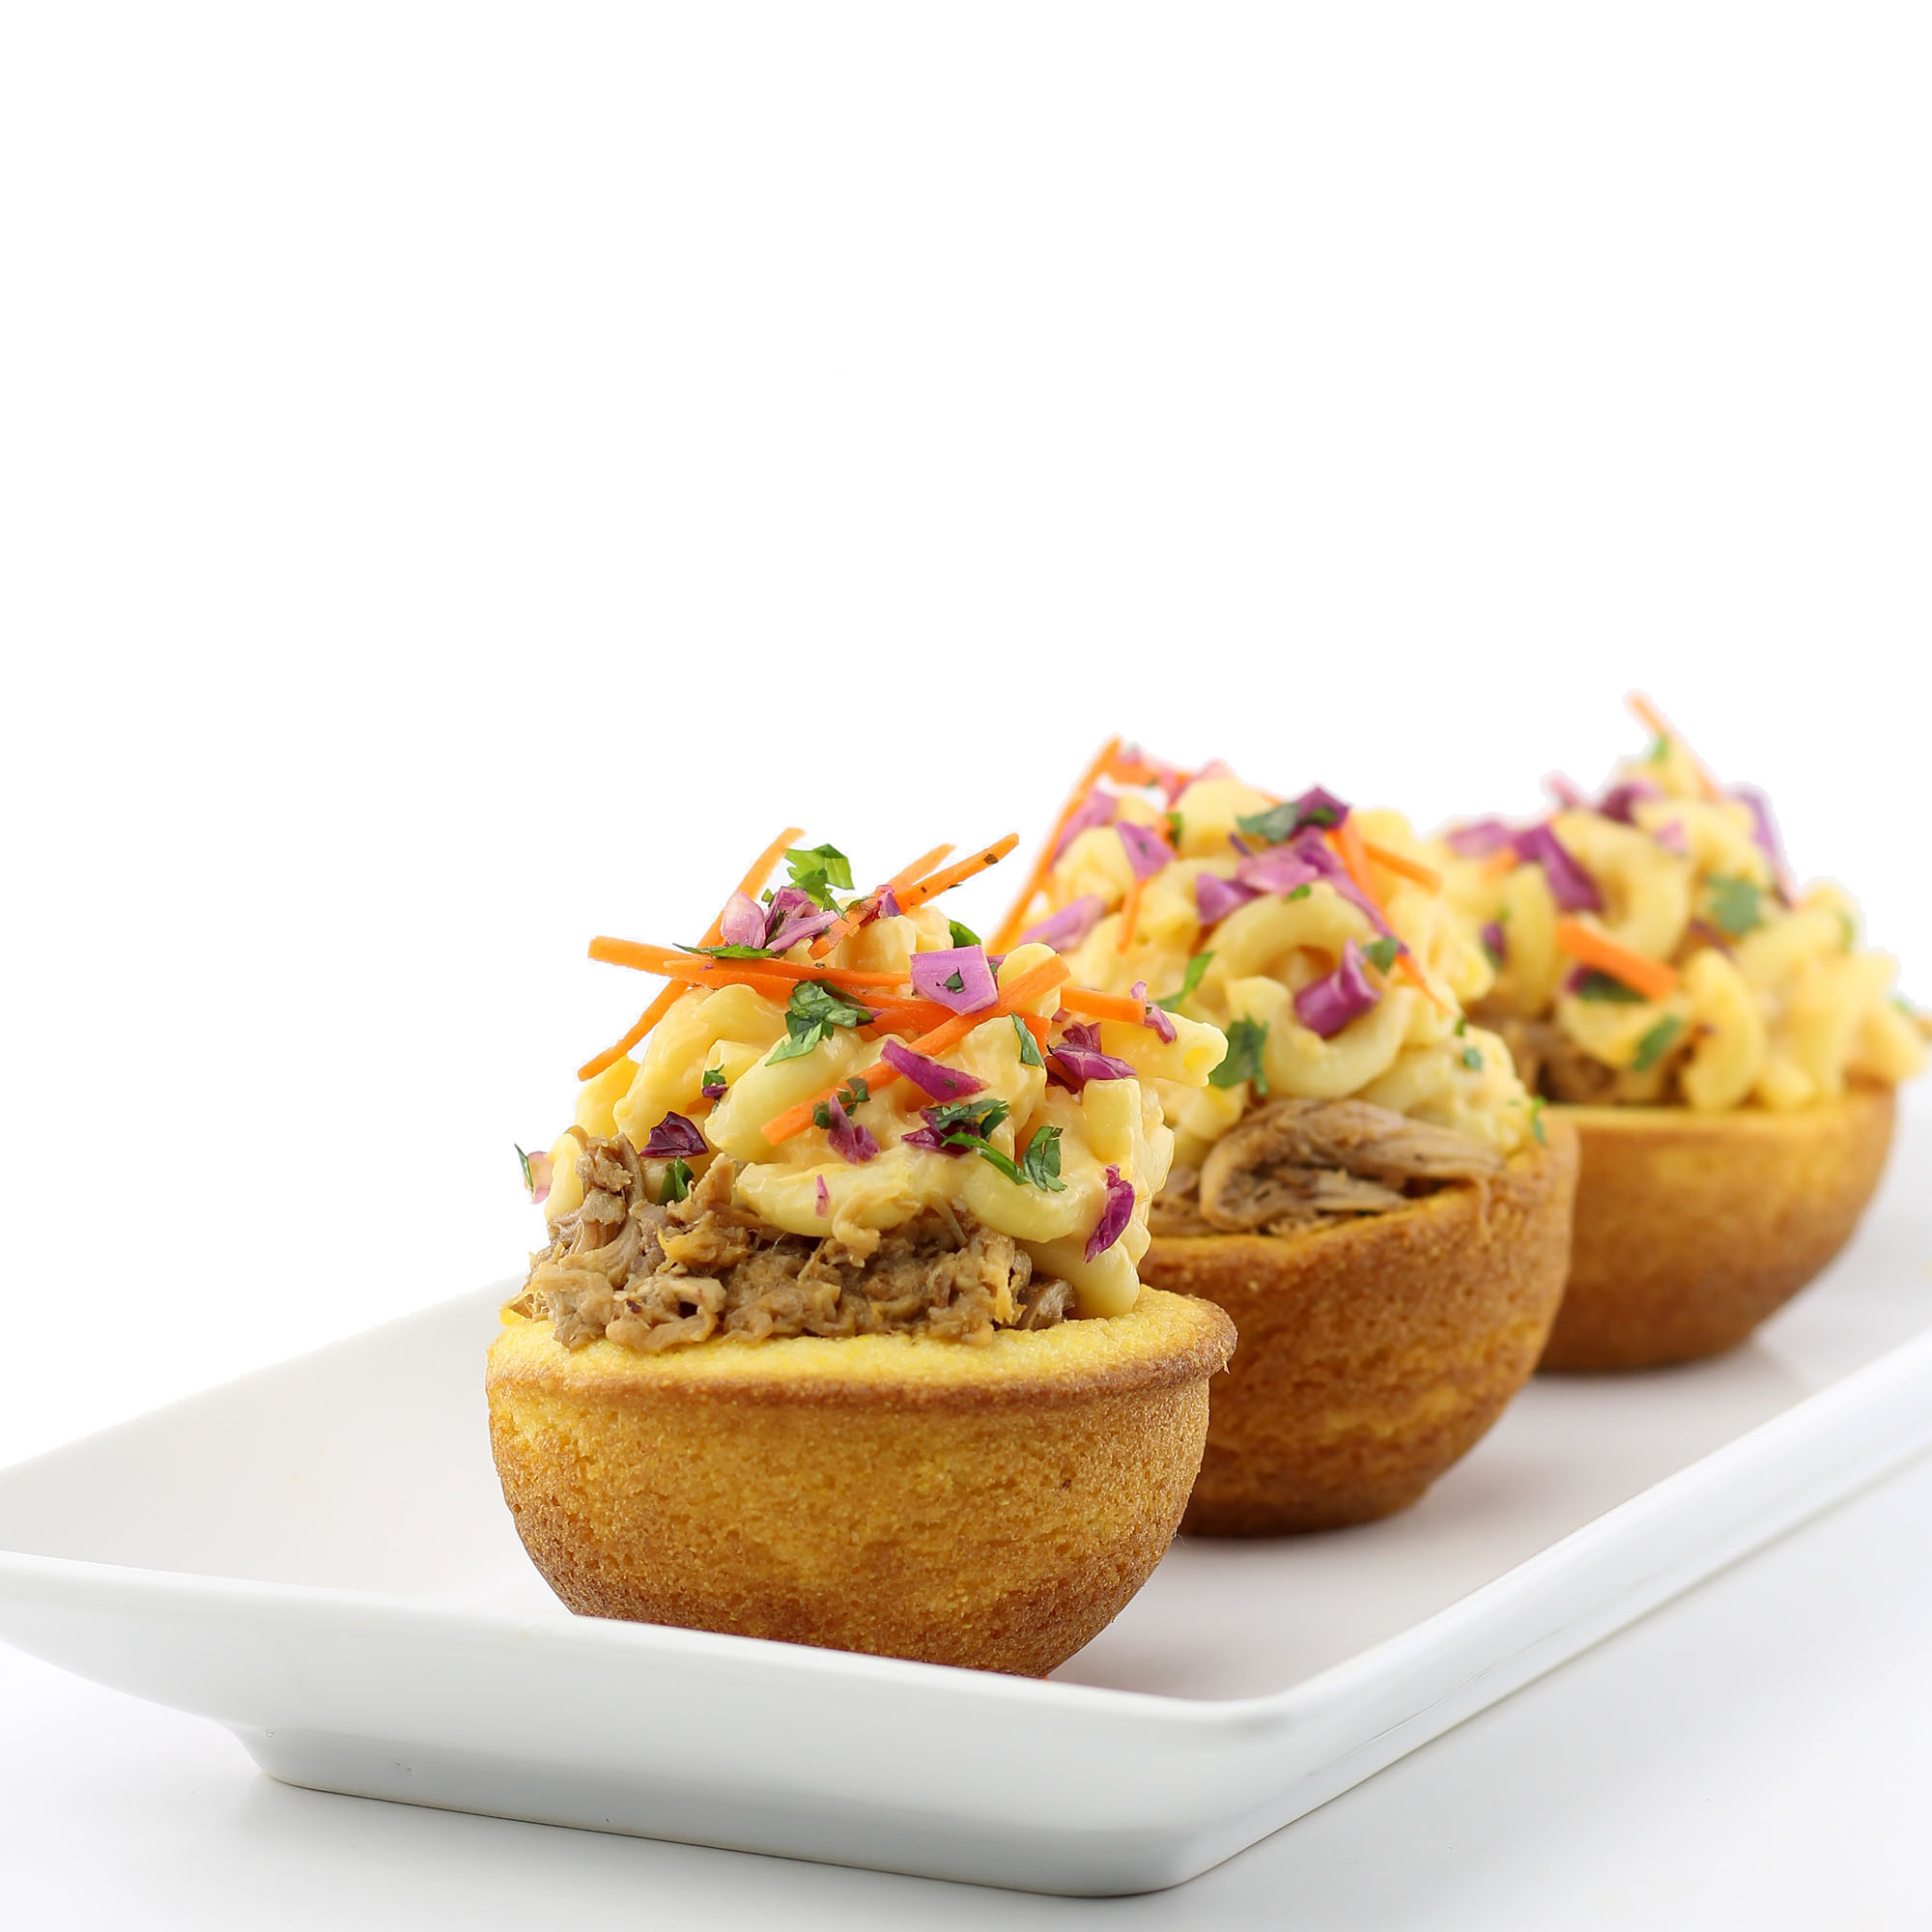 Pulled Pork, Mac & Cheese & Red Cabbage Slaw in Edible Cornbread Bowls